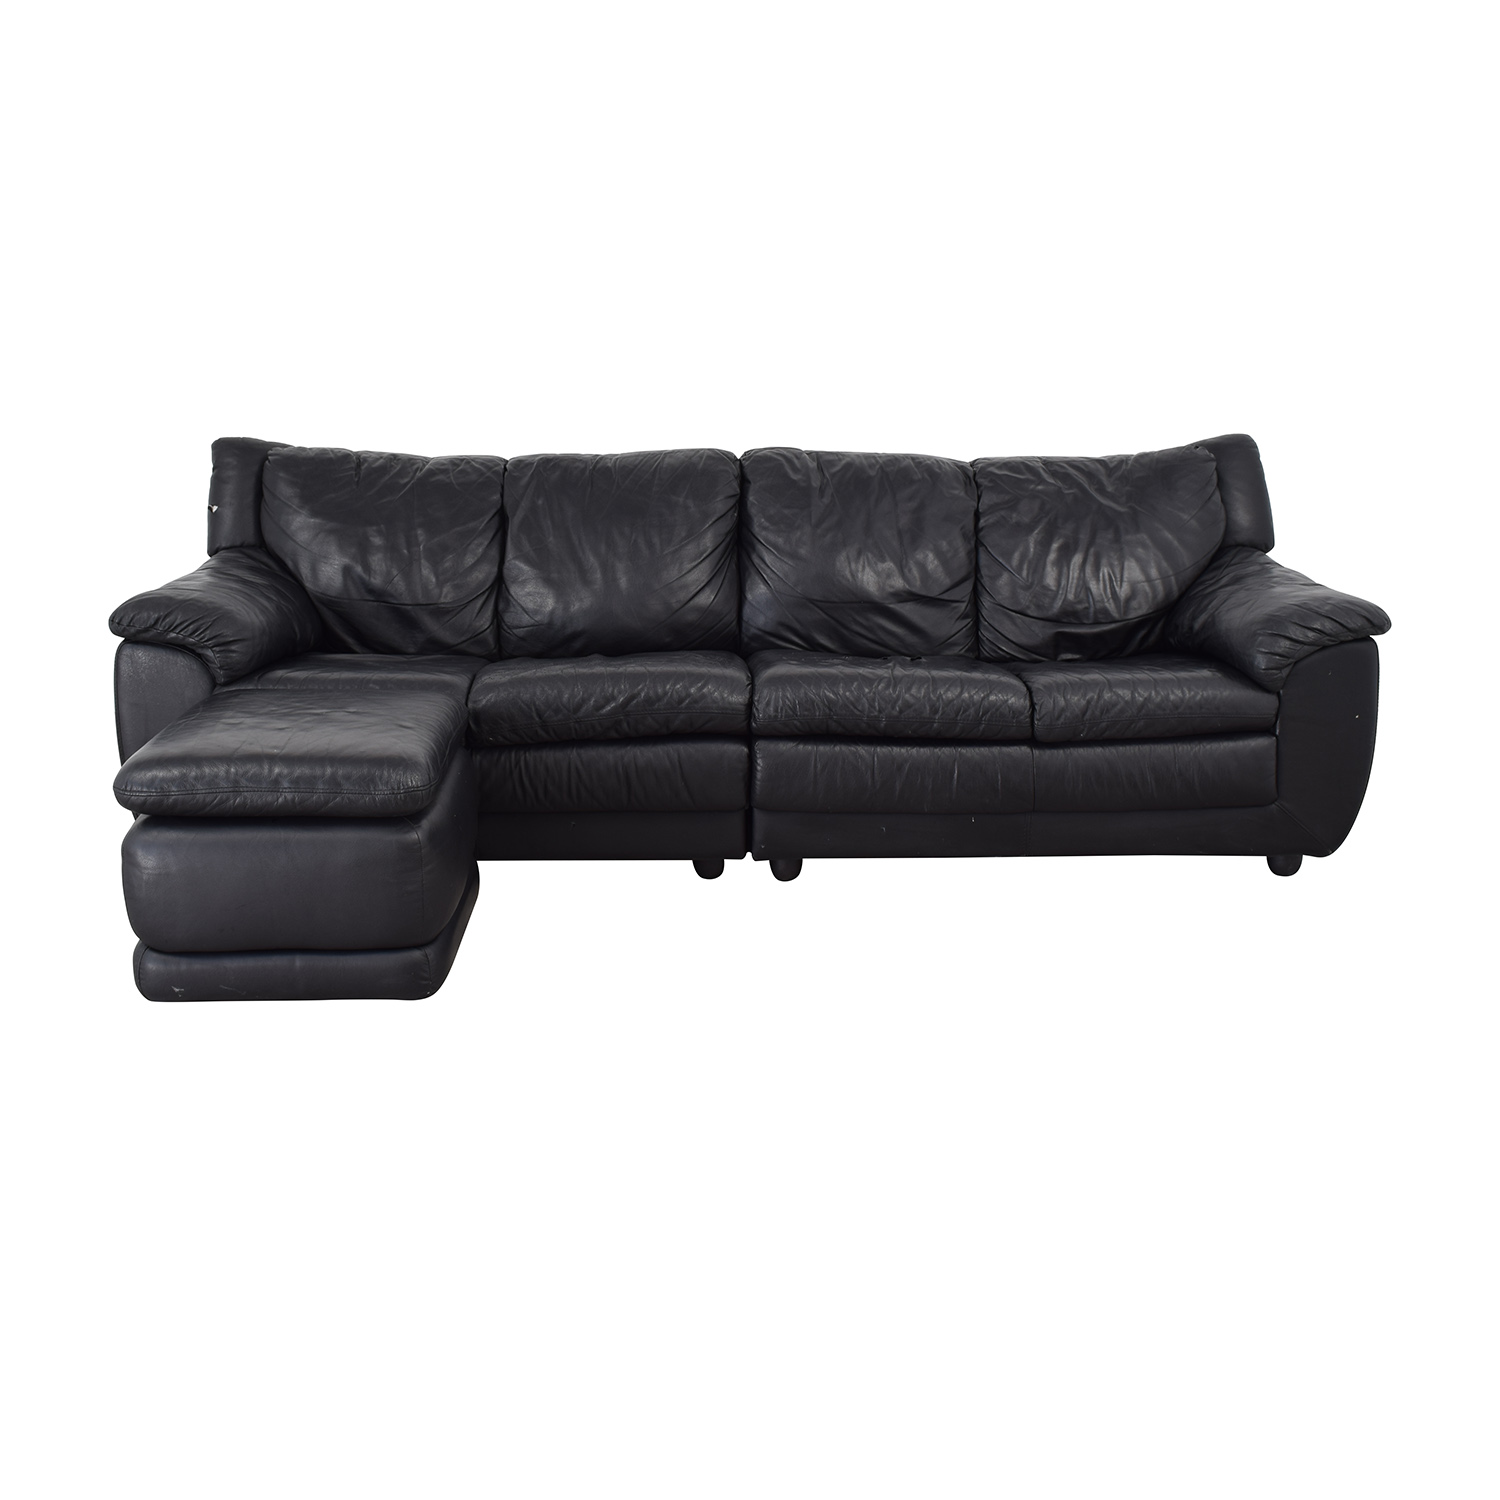 Nicoletti Home Nicoletti Home Black Four Cushion Couch with Ottoman Sectionals